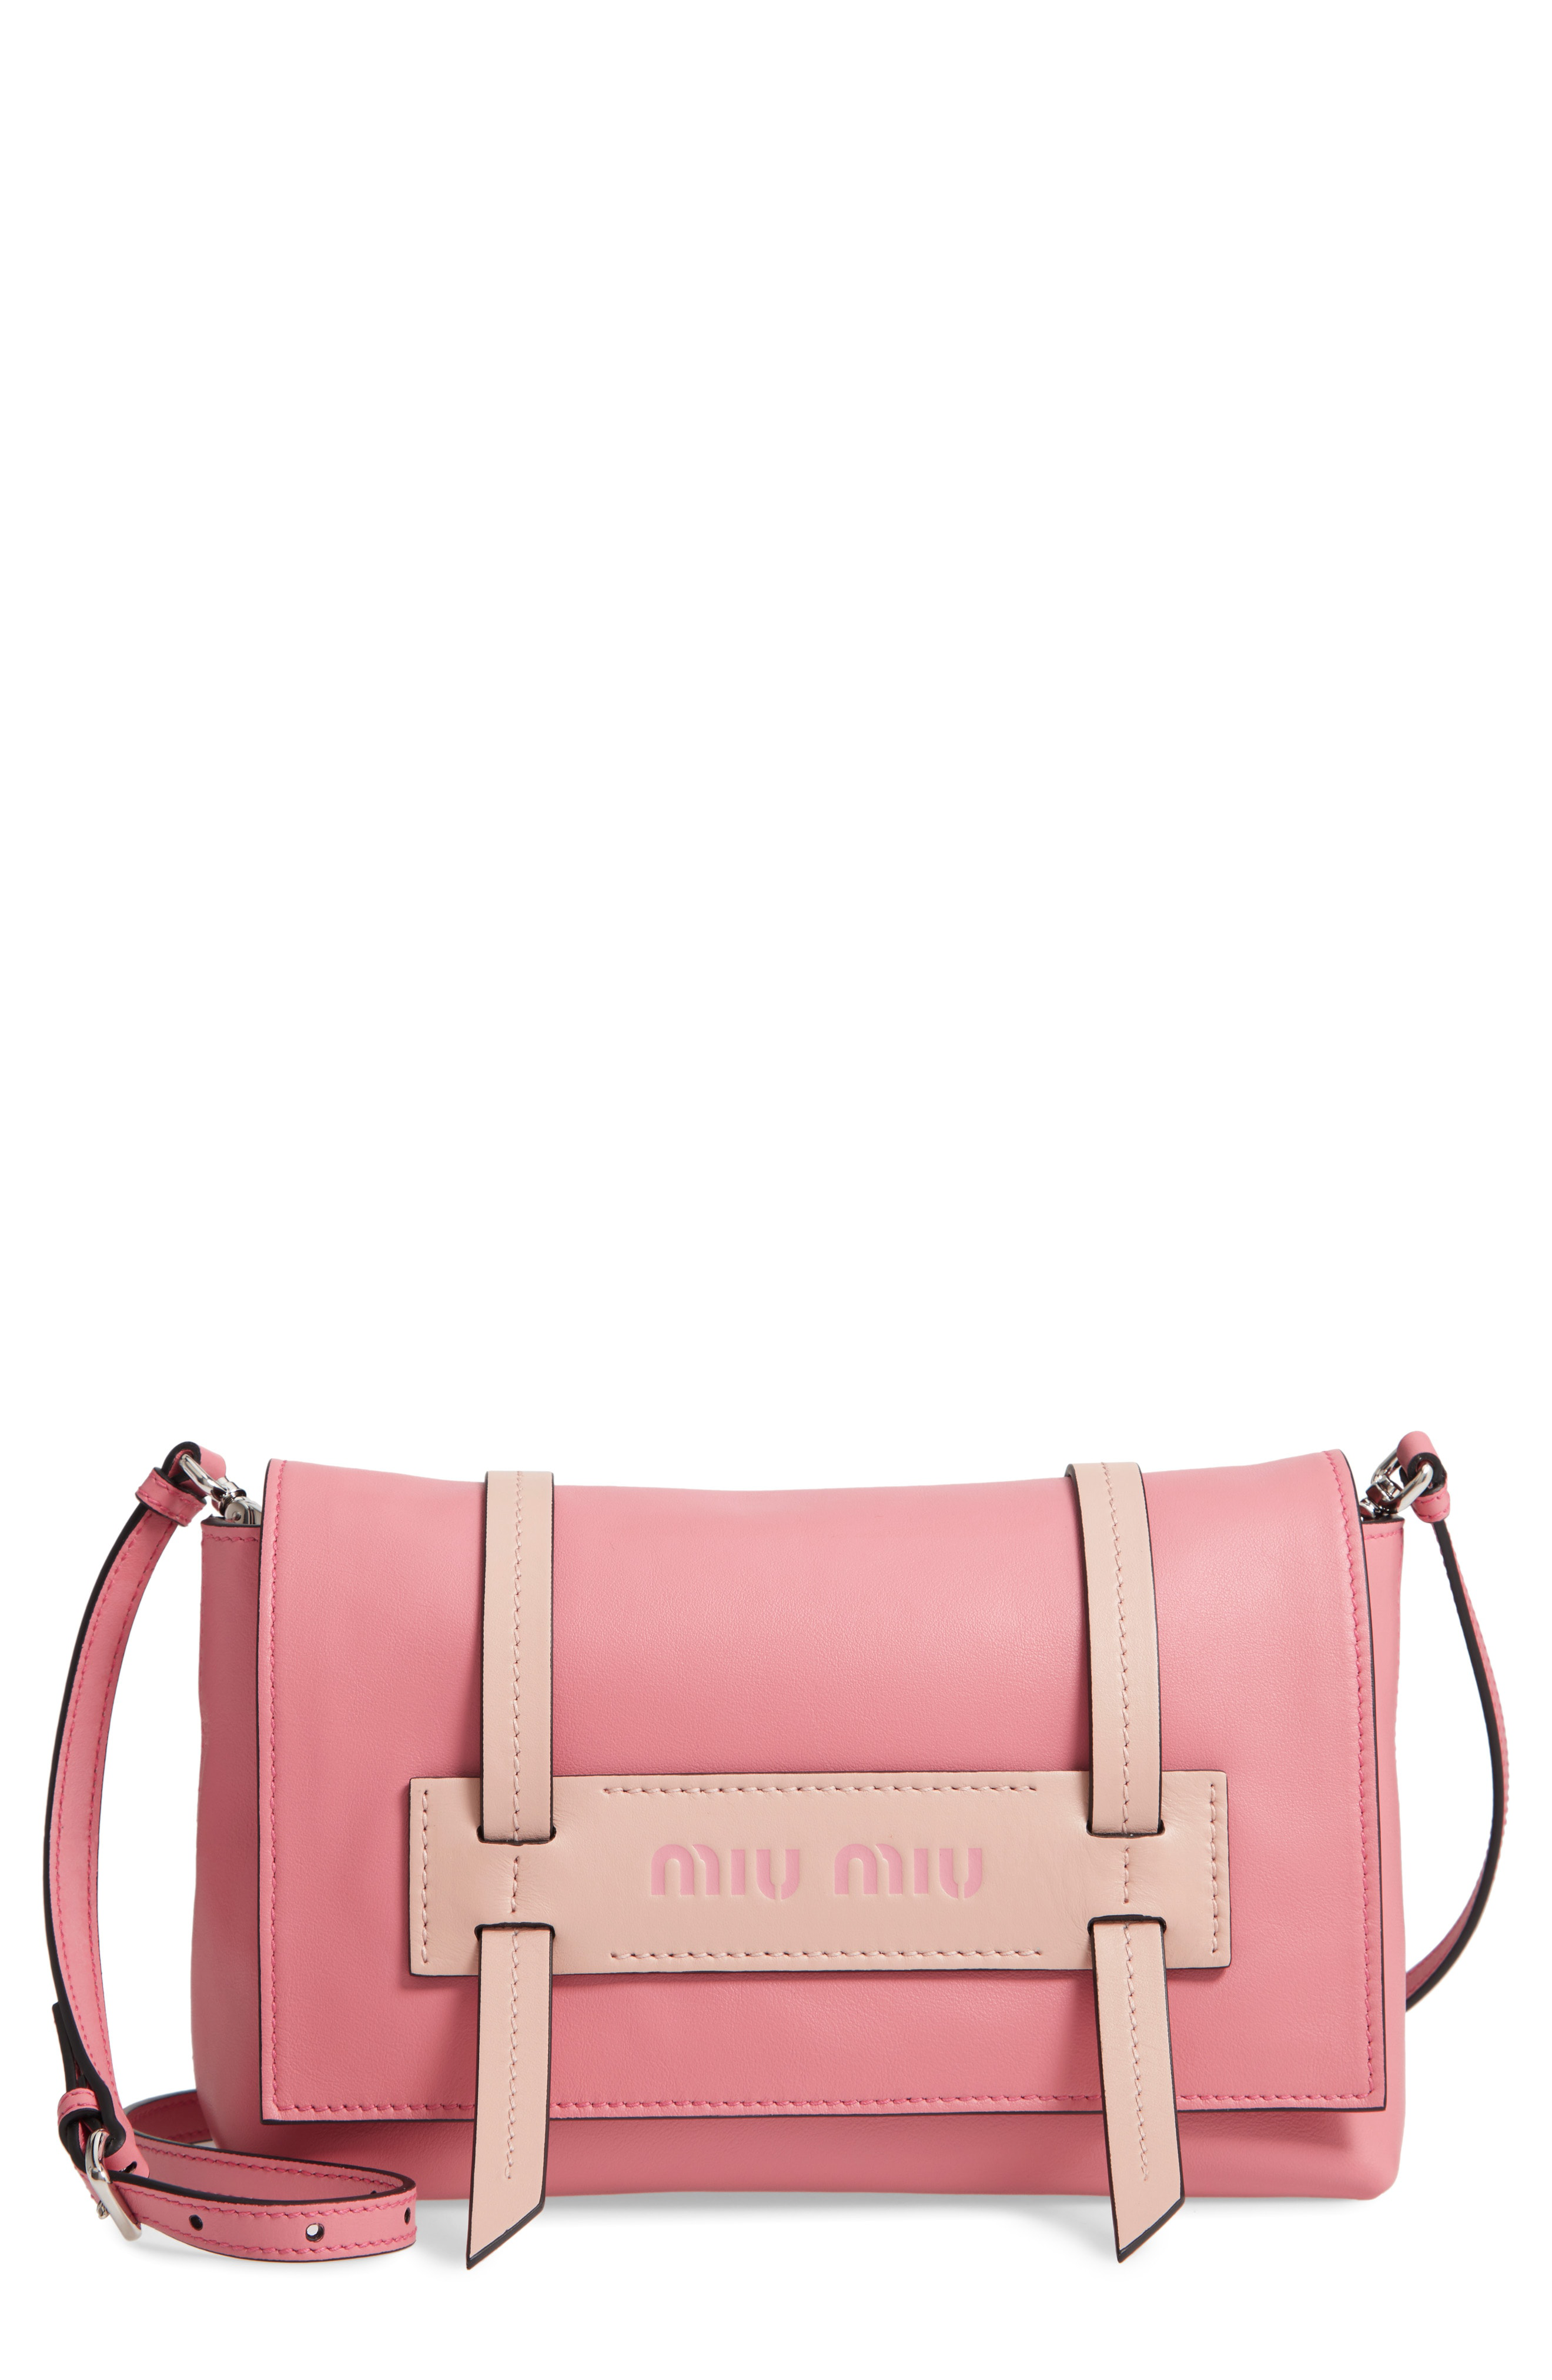 ... to the slouchy style of this chic calfskin bag accented with  logo-embossed contrast trim. Style Name  Miu Miu Small Grace Calfskin  Shoulder Bag. 94ea9290380f7